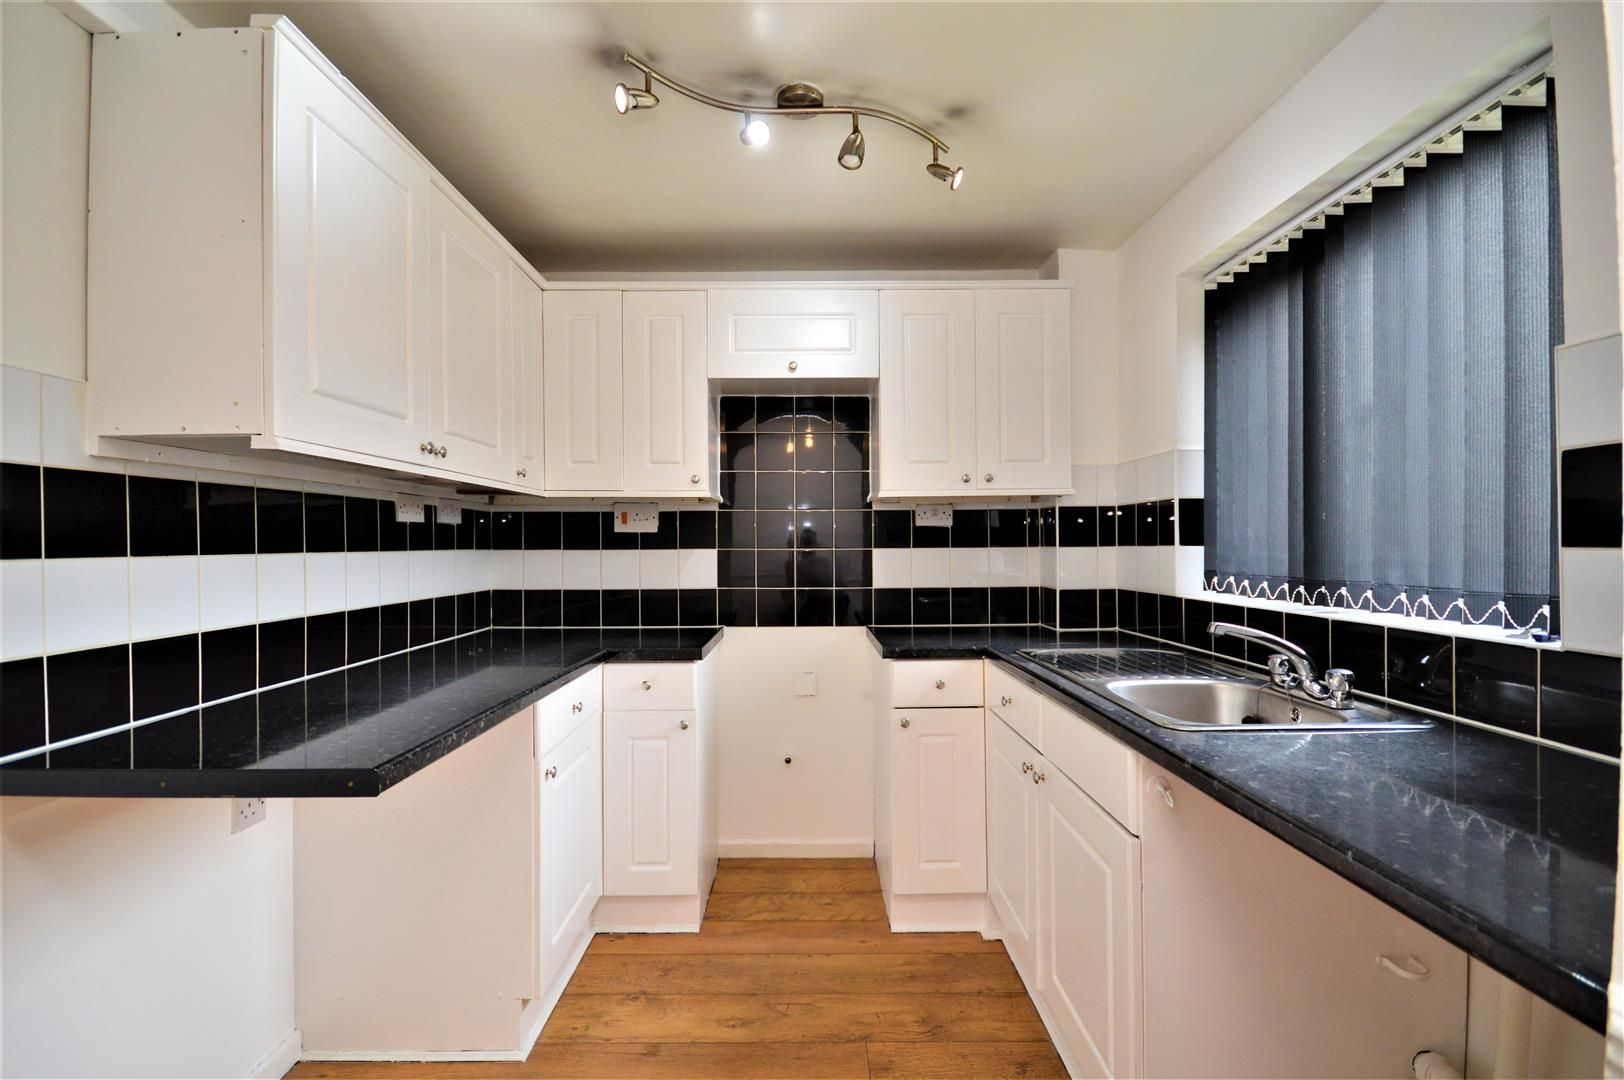 2 bed end-of-terrace for sale in Belmont  - Property Image 2